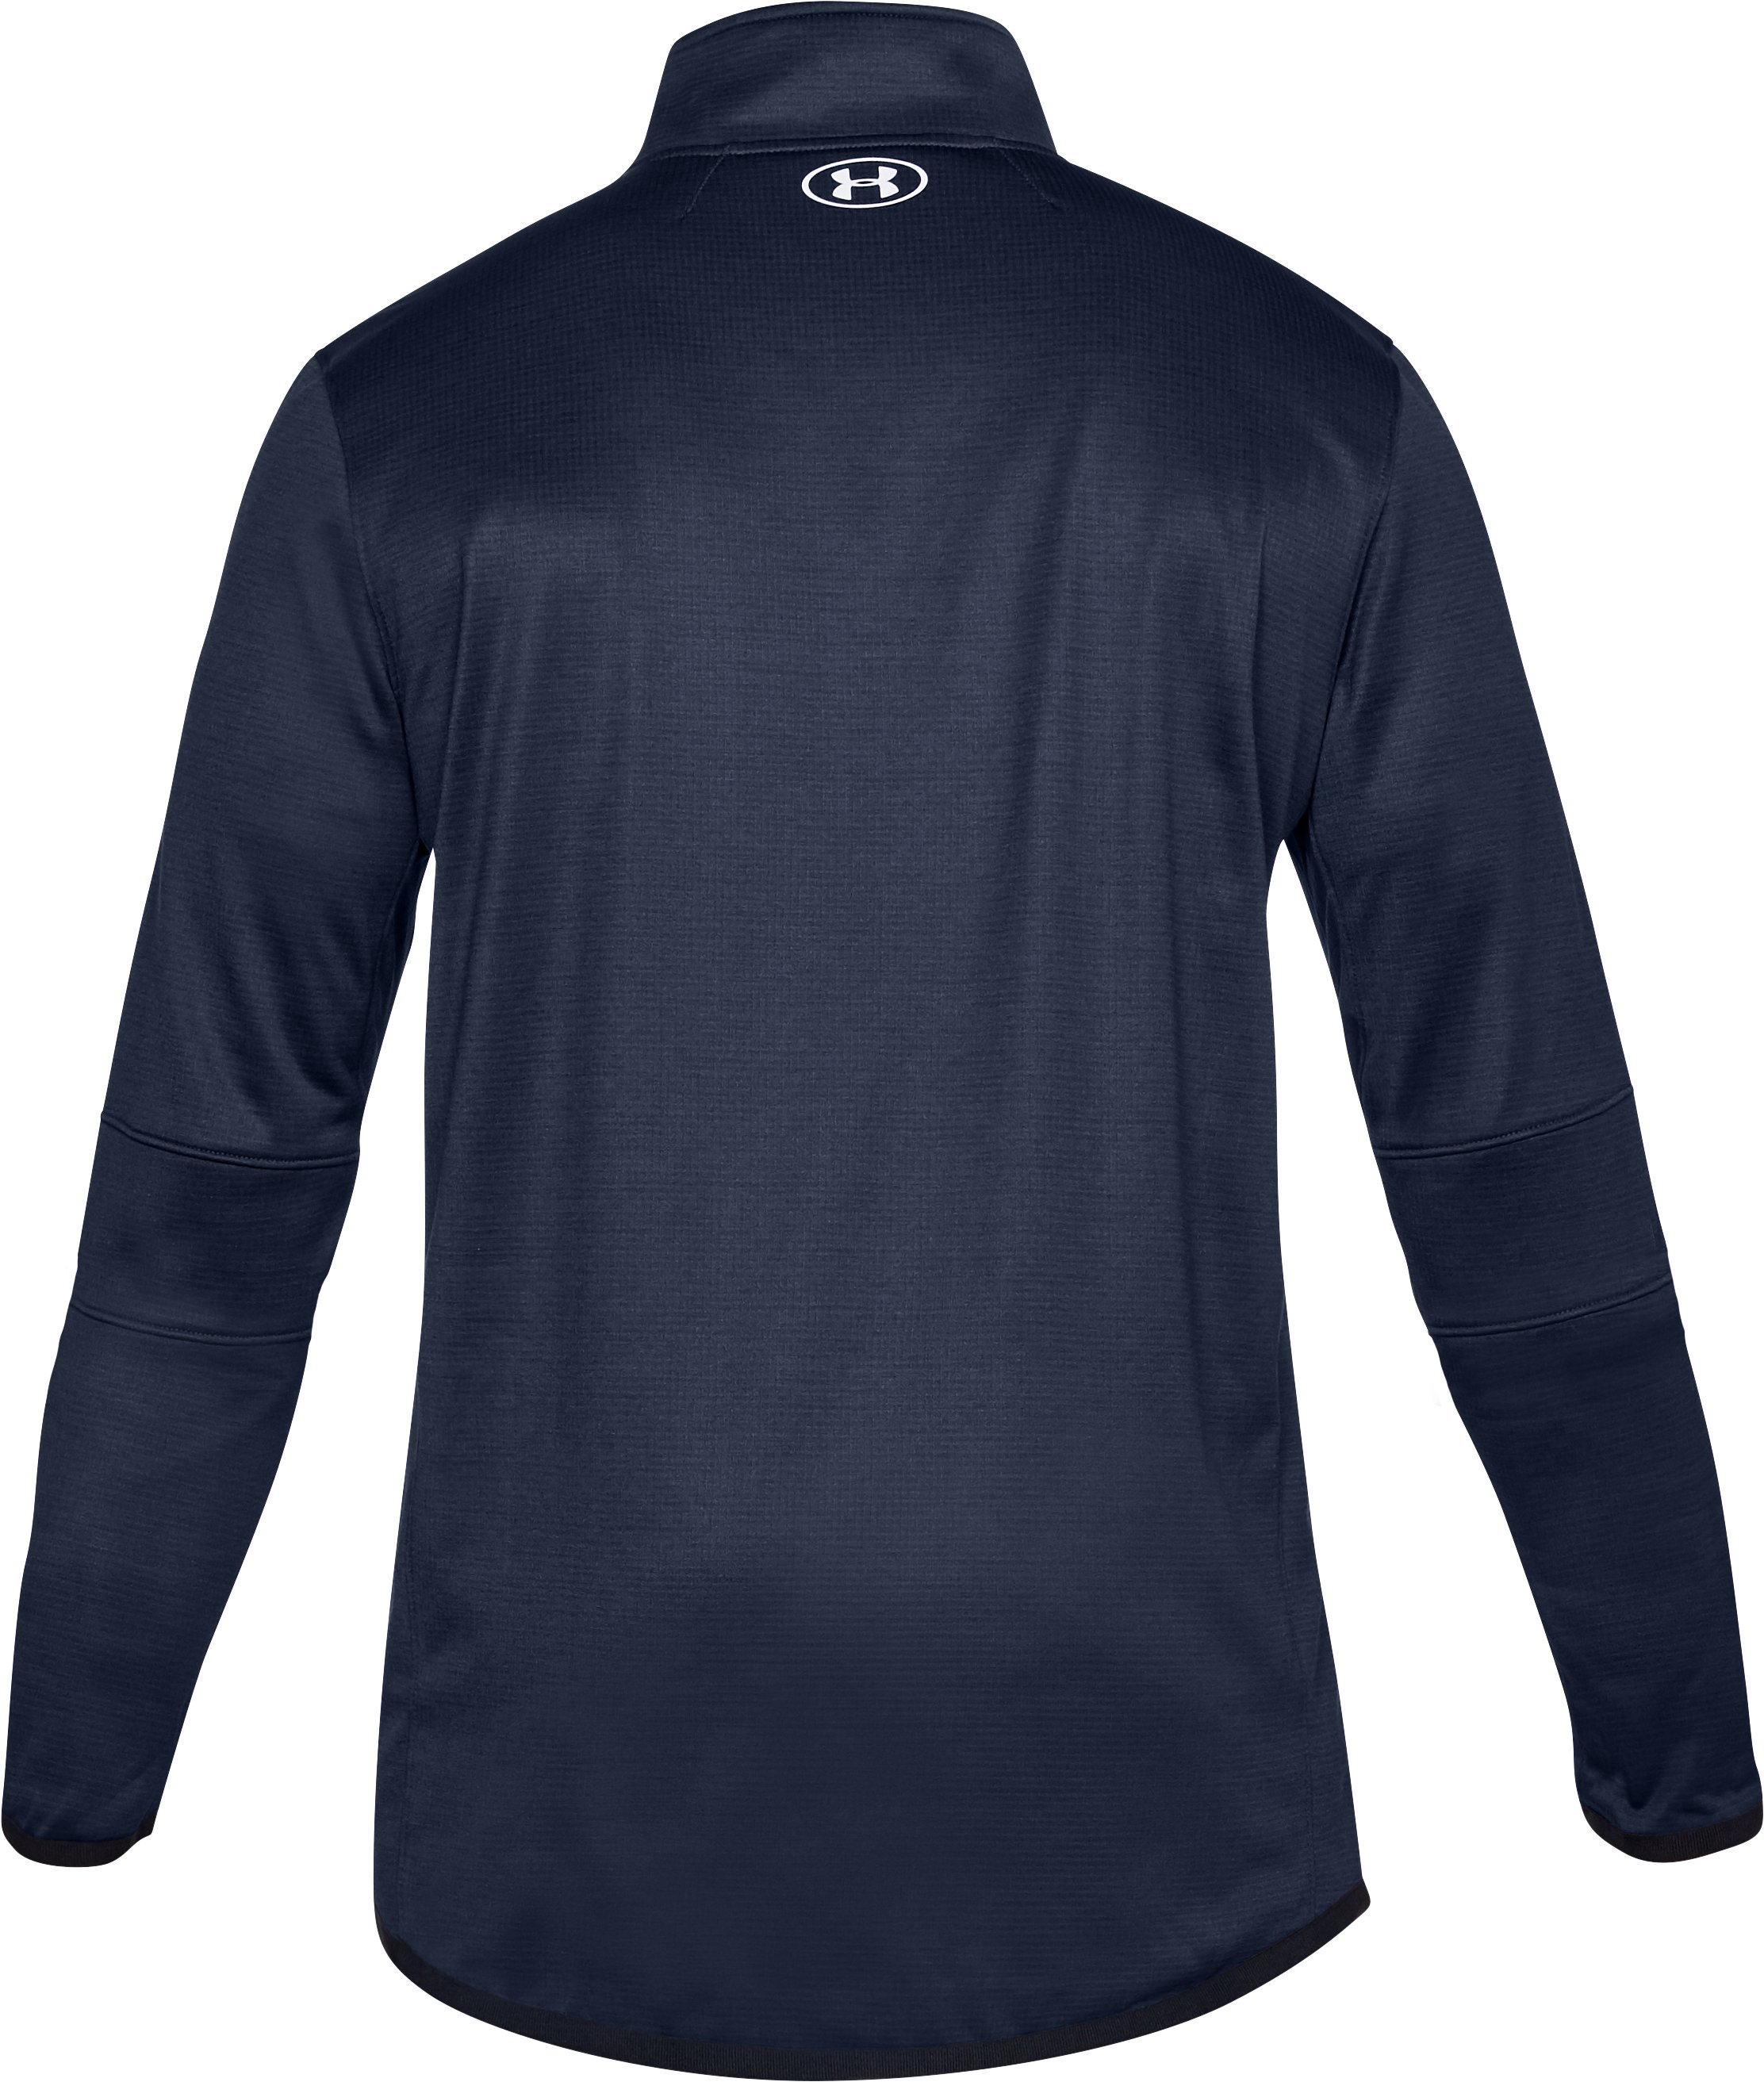 Men's ColdGear® Reactor Fleece ¼ Zip, Midnight Navy,